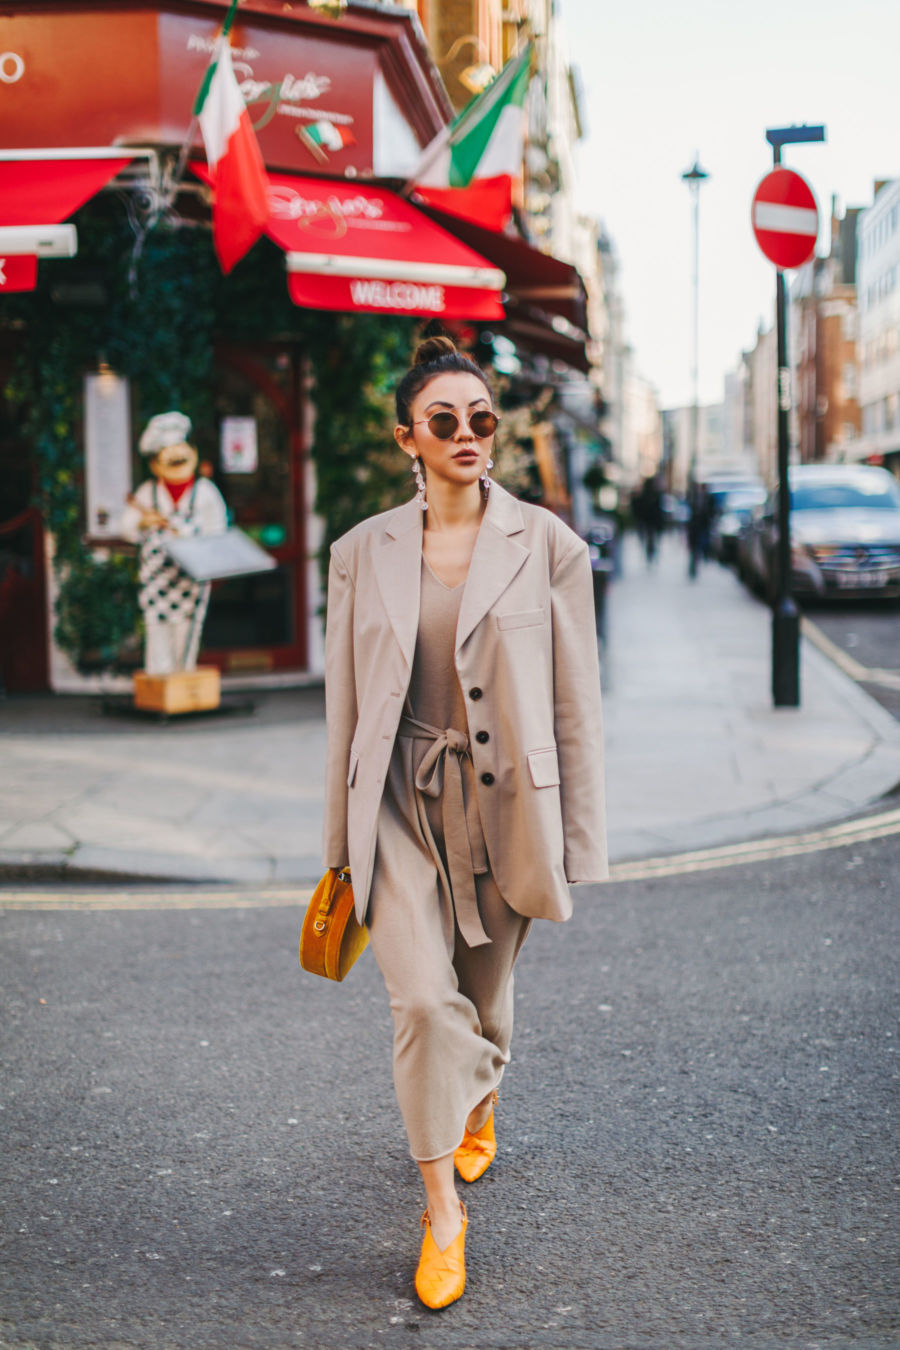 Oversized Blazer & Knit Dress via Notjessfashion